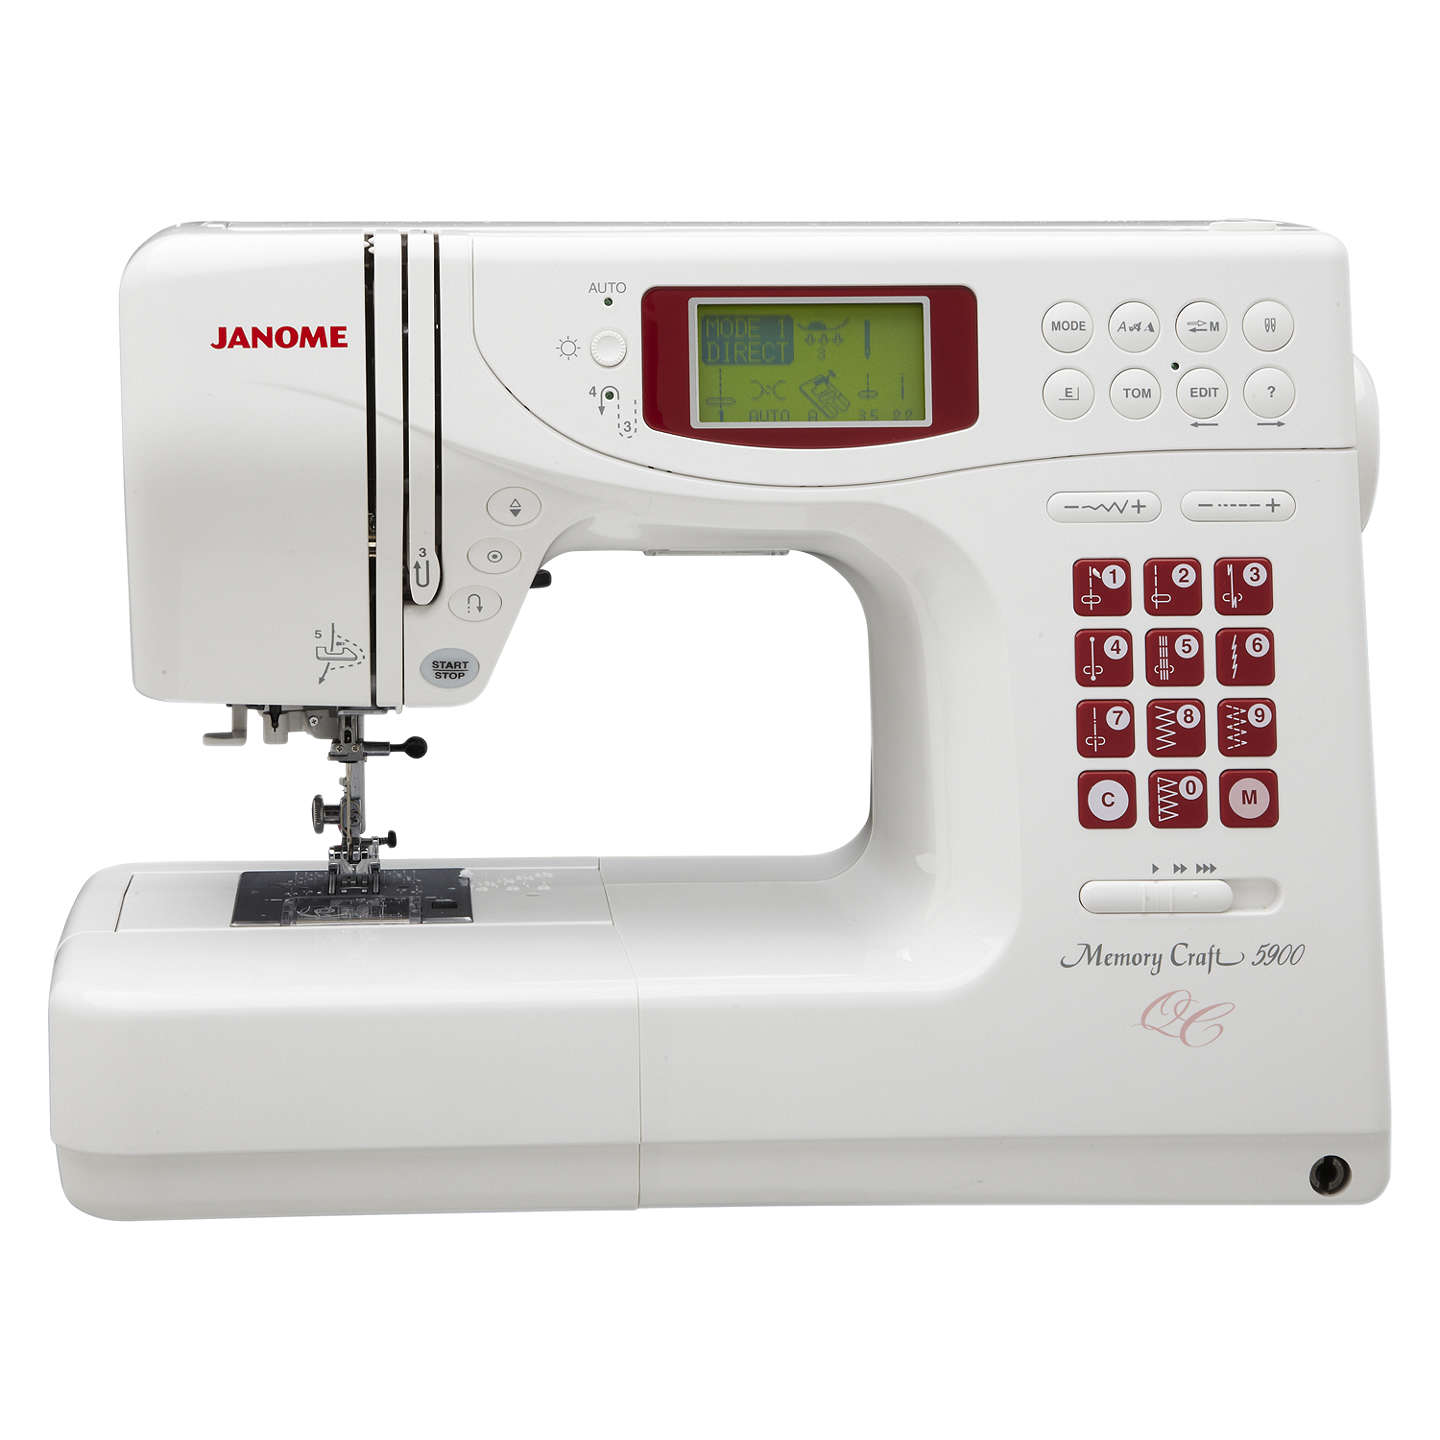 sew sewing machine n vac janome blows quilting quilt computerized